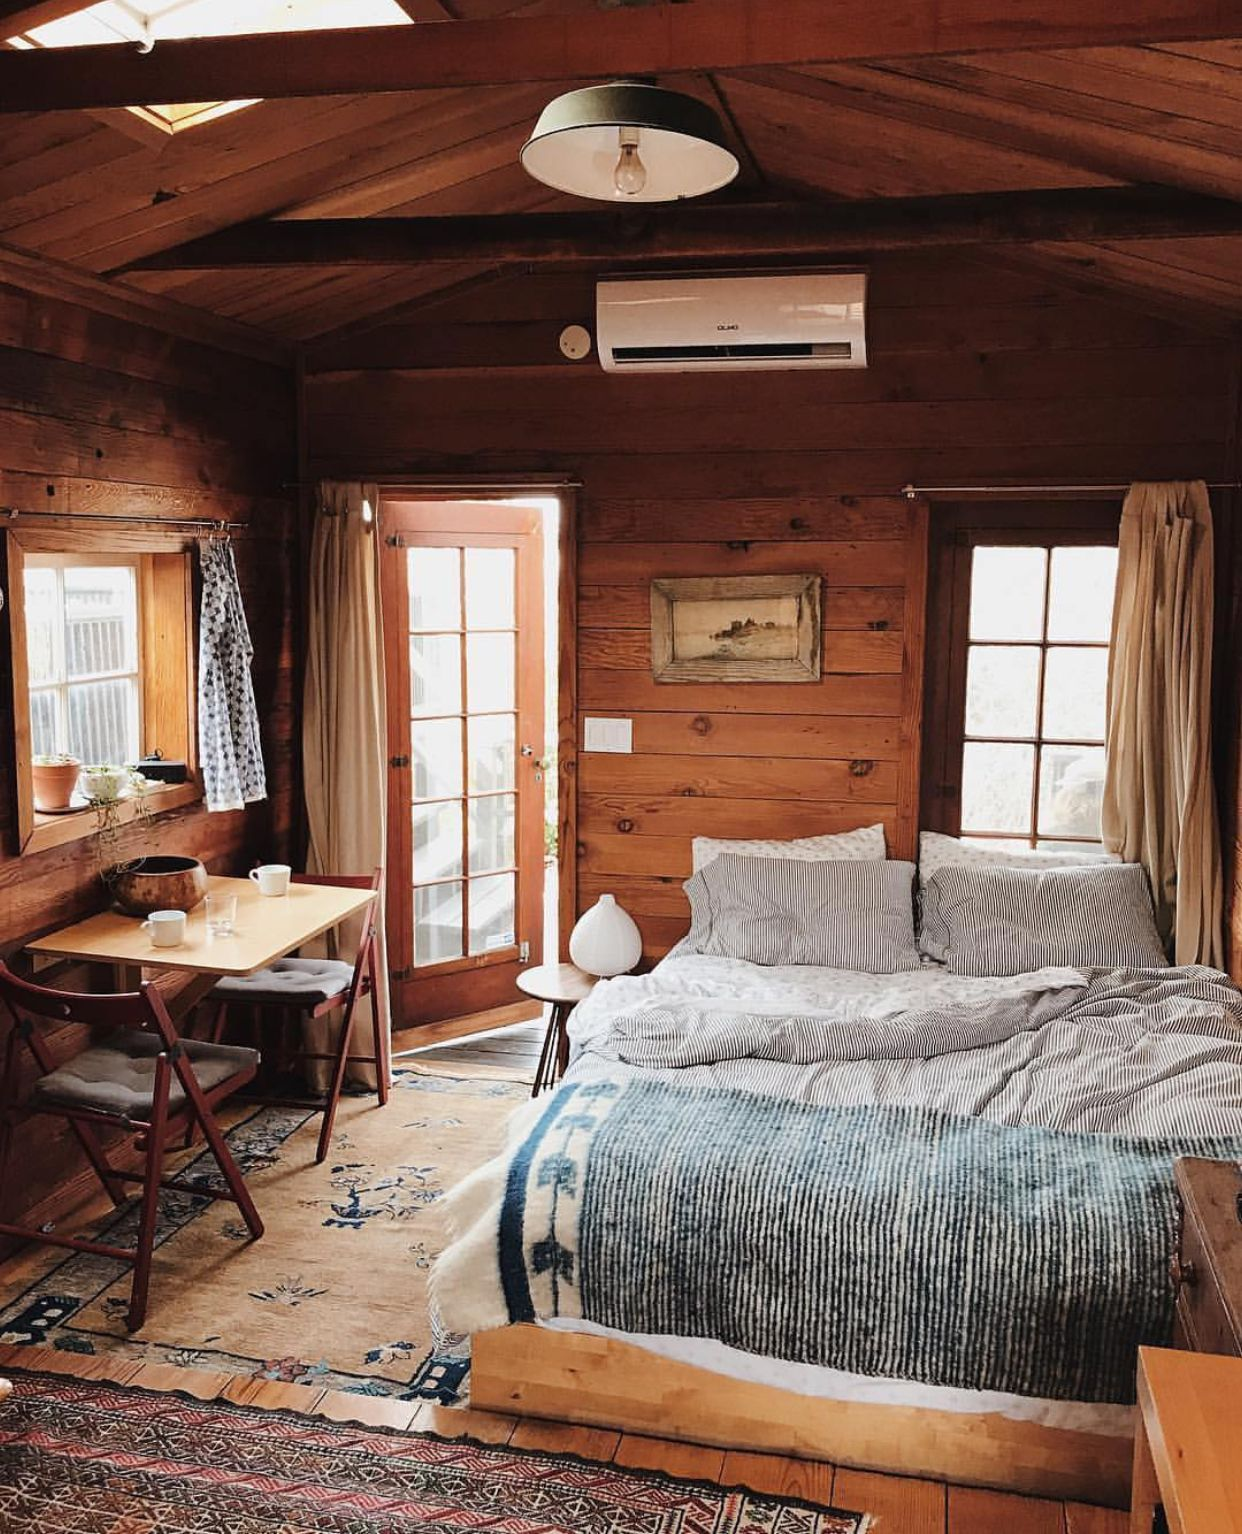 Now This Is A Nice Simple Cabin!